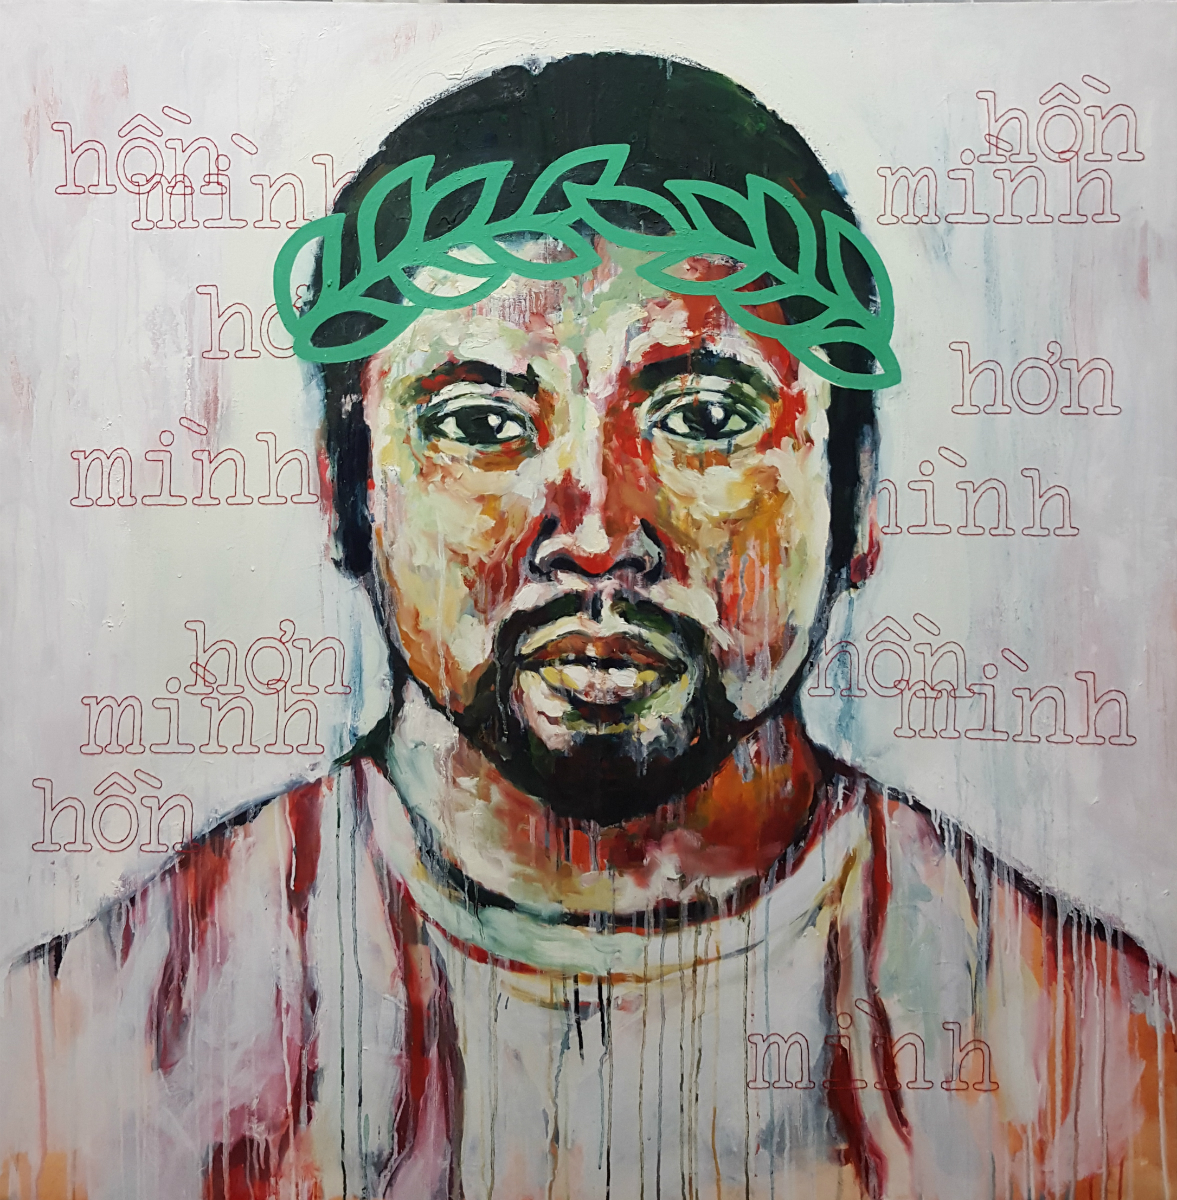 "Hồn Mình Hơn Mình,   2012, Oil and hand embroidery on canvas, 48 x 48""  Since antiquity, the laurel wreath has been a powerful symbol of victory. Here, a man, exhausted from all that he has had to endure, wears the laurel wreath which he has earned through his unyielding Faith and perseverance.  The hand stitching reads, ""Hồn mình hơn mình"" (pronounced ""Hone ming hun ming""), a Vietnamese phrase that translates to ""Our Spirit is greater than us."" Breathing in while puncturing the canvas and breathing out while pulling the thread, the physical rhythm created during the process of hand stitching assists me in mediating upon the subject at hand. This painting intends to be a reminder to all who have fallen short of breath during the battles which are essential to the life experience. A reminder to all that we shall triumph as we cultivate our inherent Will to overcome."